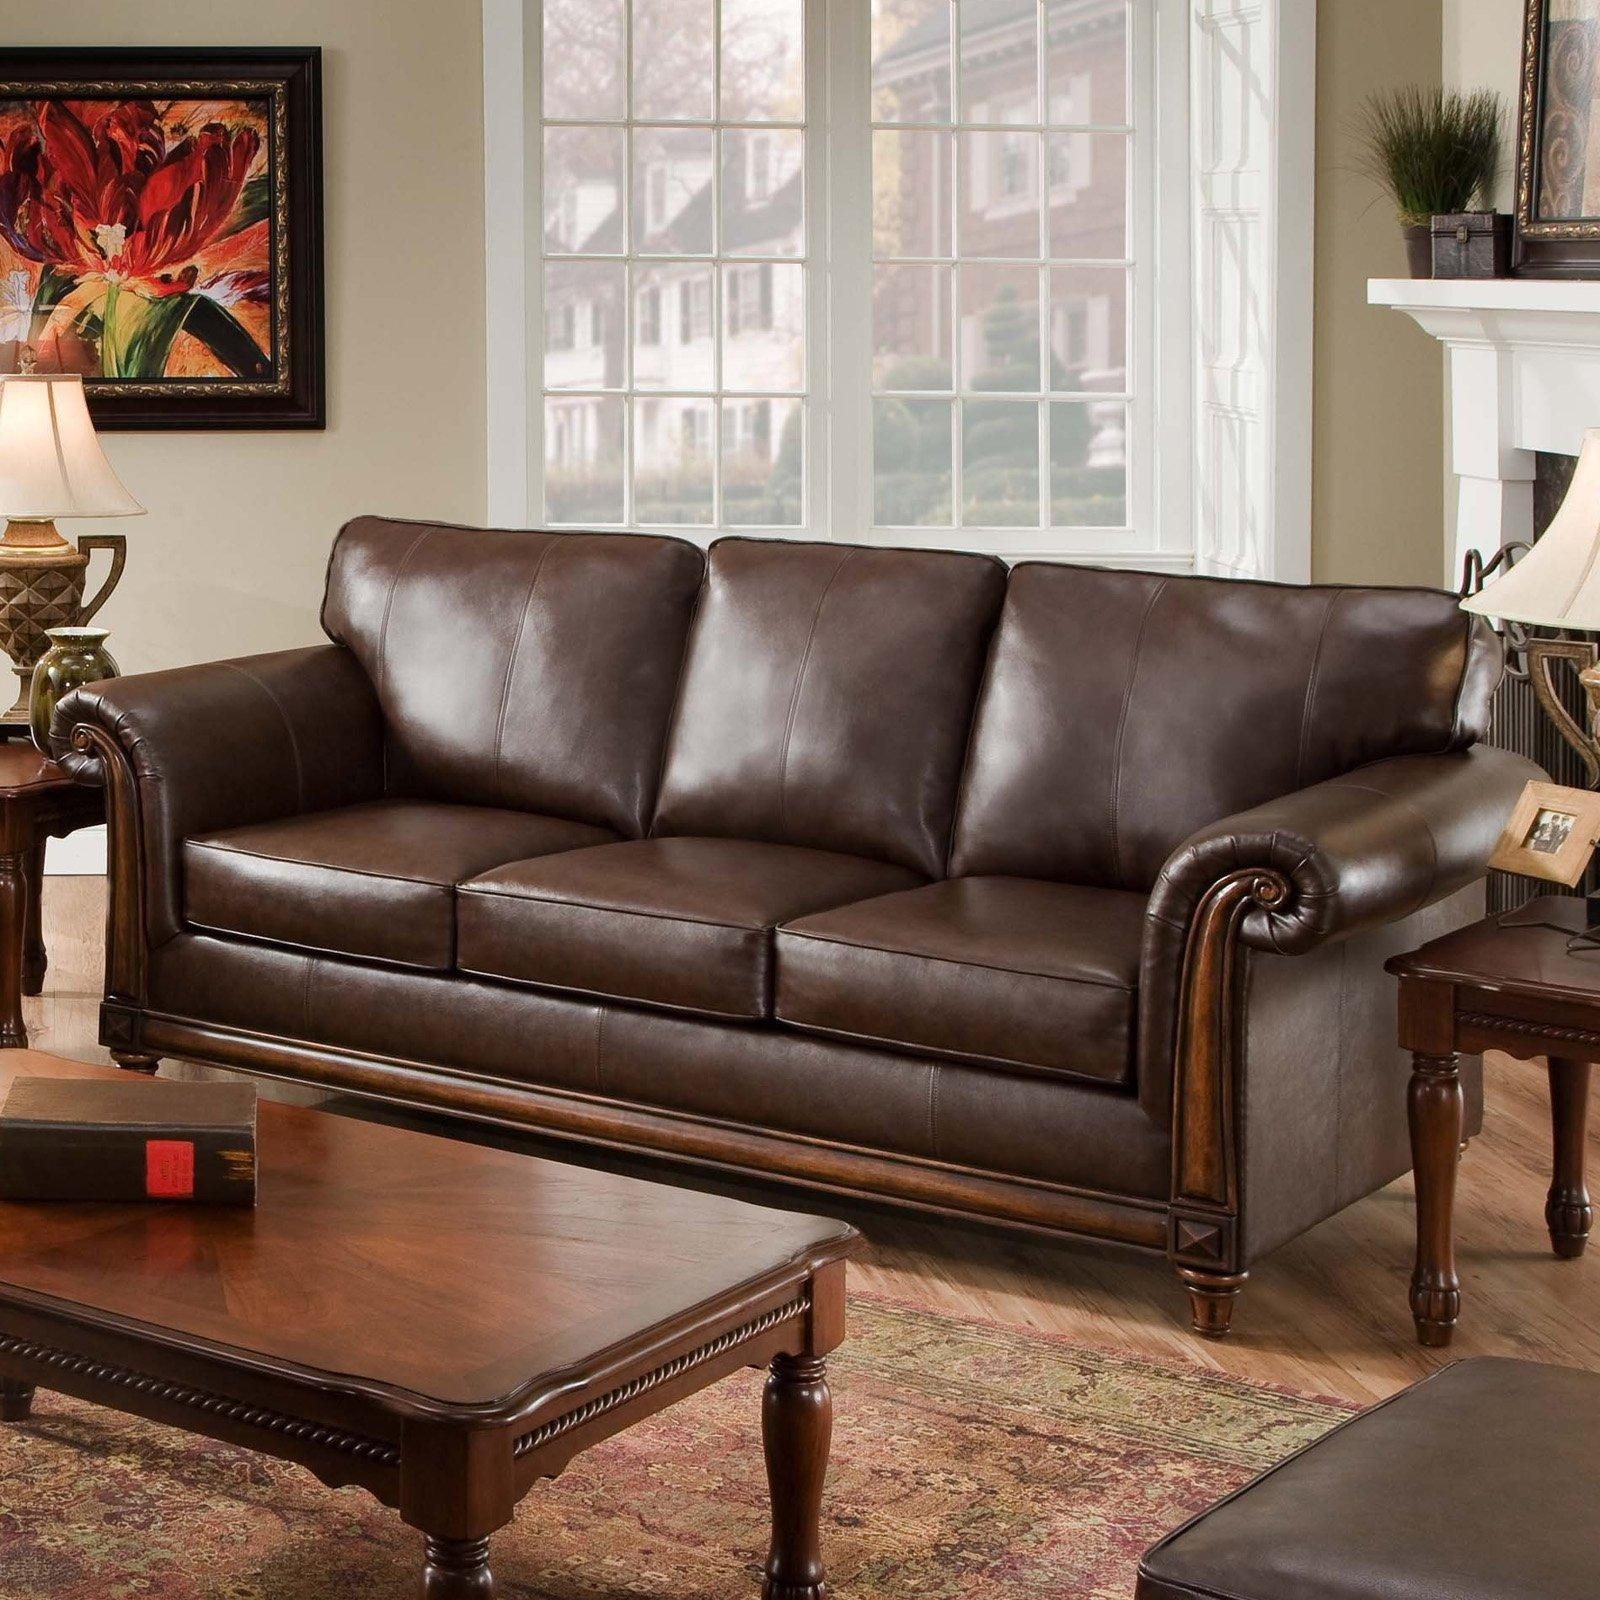 Belham Living Owen Leather Sofa | Hayneedle For High Quality Leather Sectional (View 4 of 20)